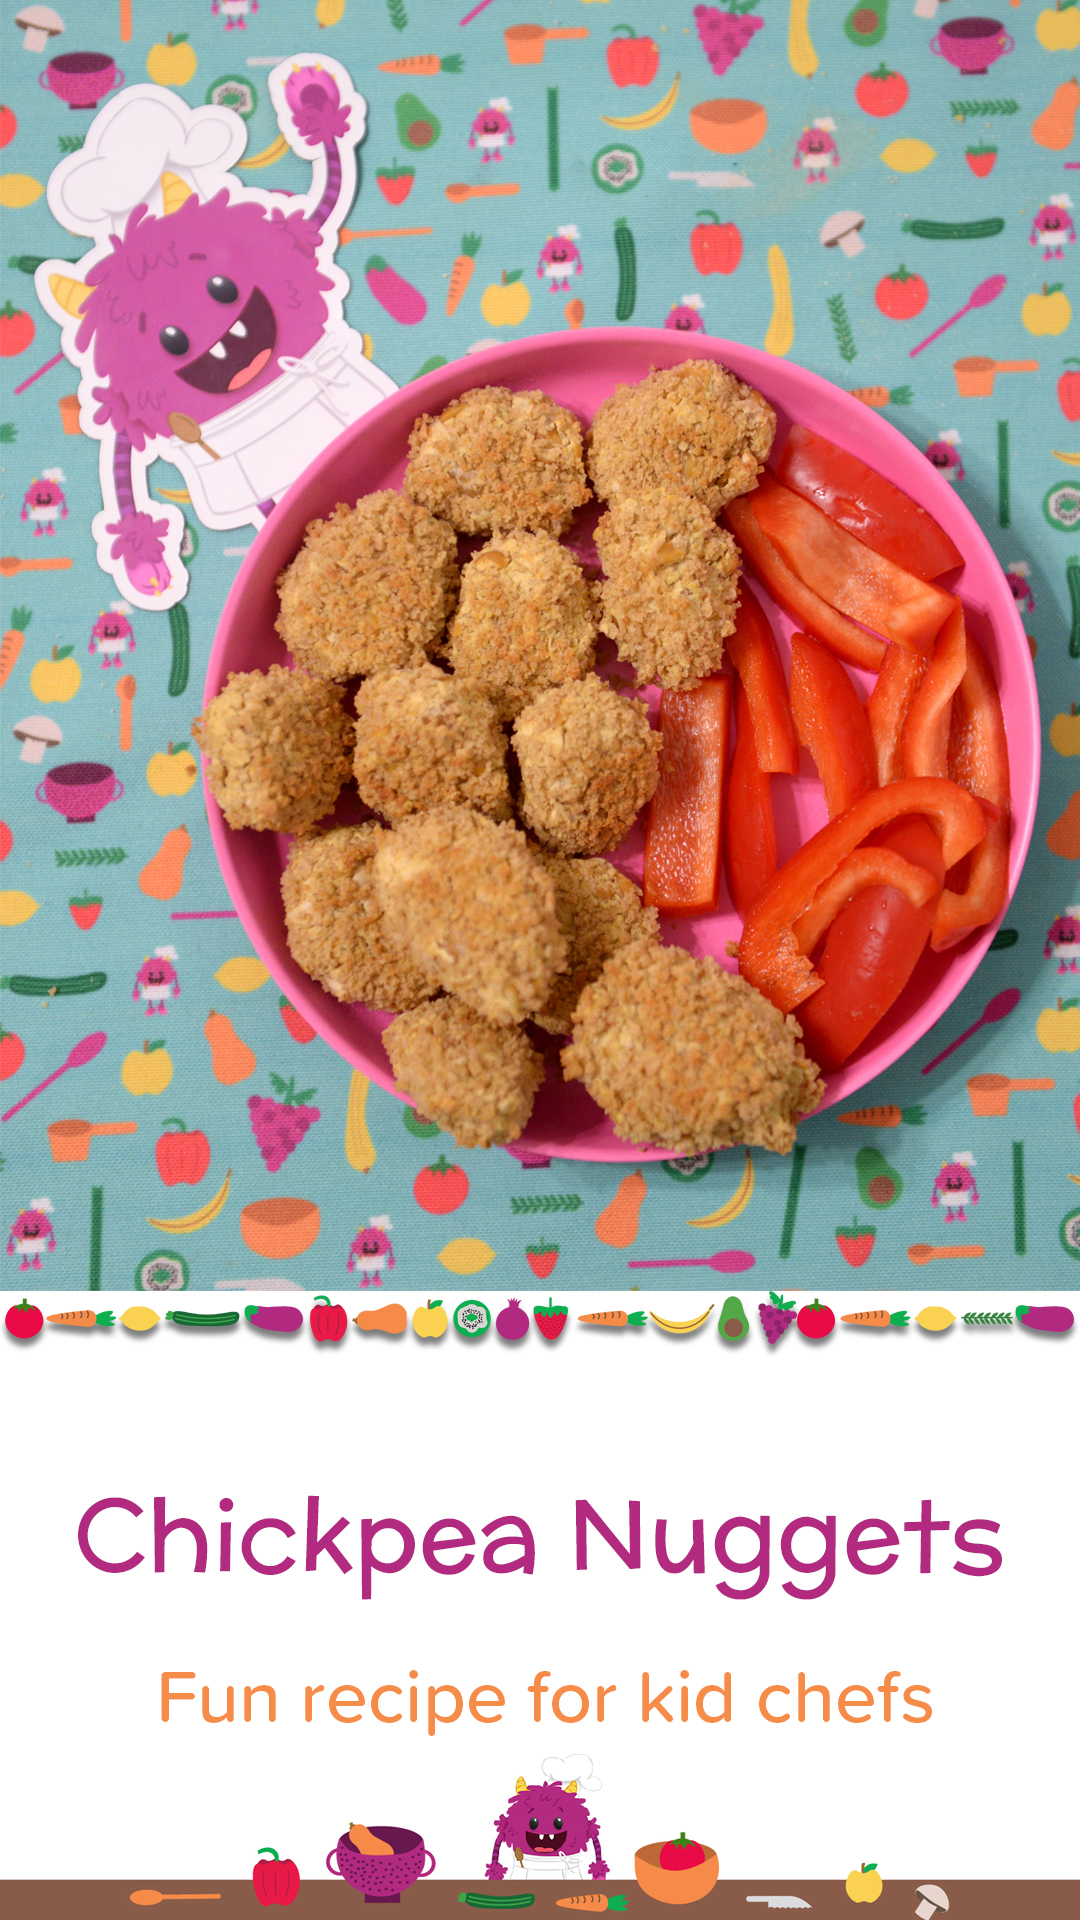 Chickpea nuggets.jpg